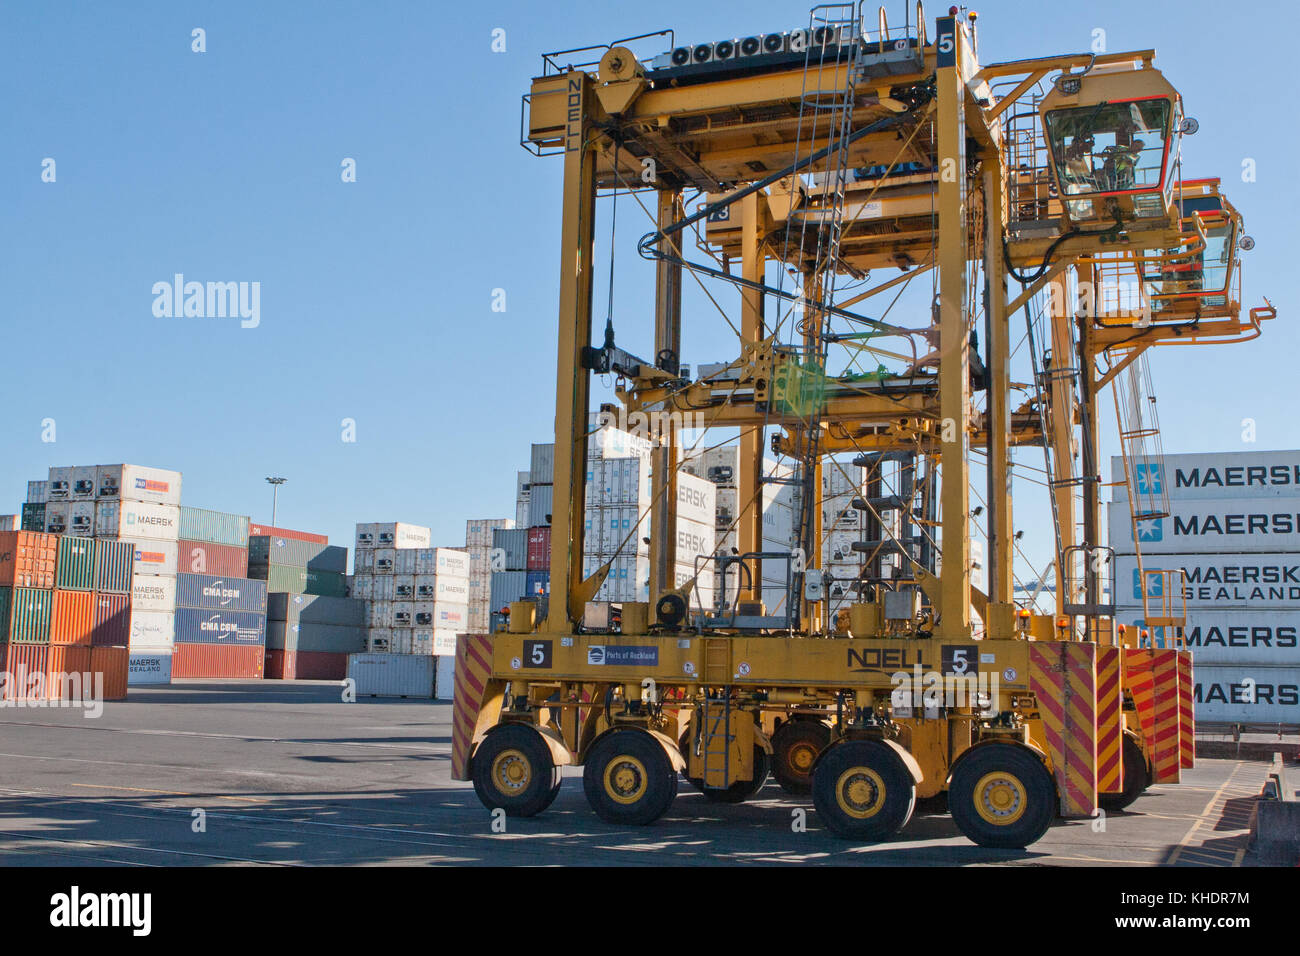 AUCKLAND, NEW ZEALAND - APRIL 19 2012: Straddle carriers and stack of containers at Auckland port. New Zealand - Stock Image